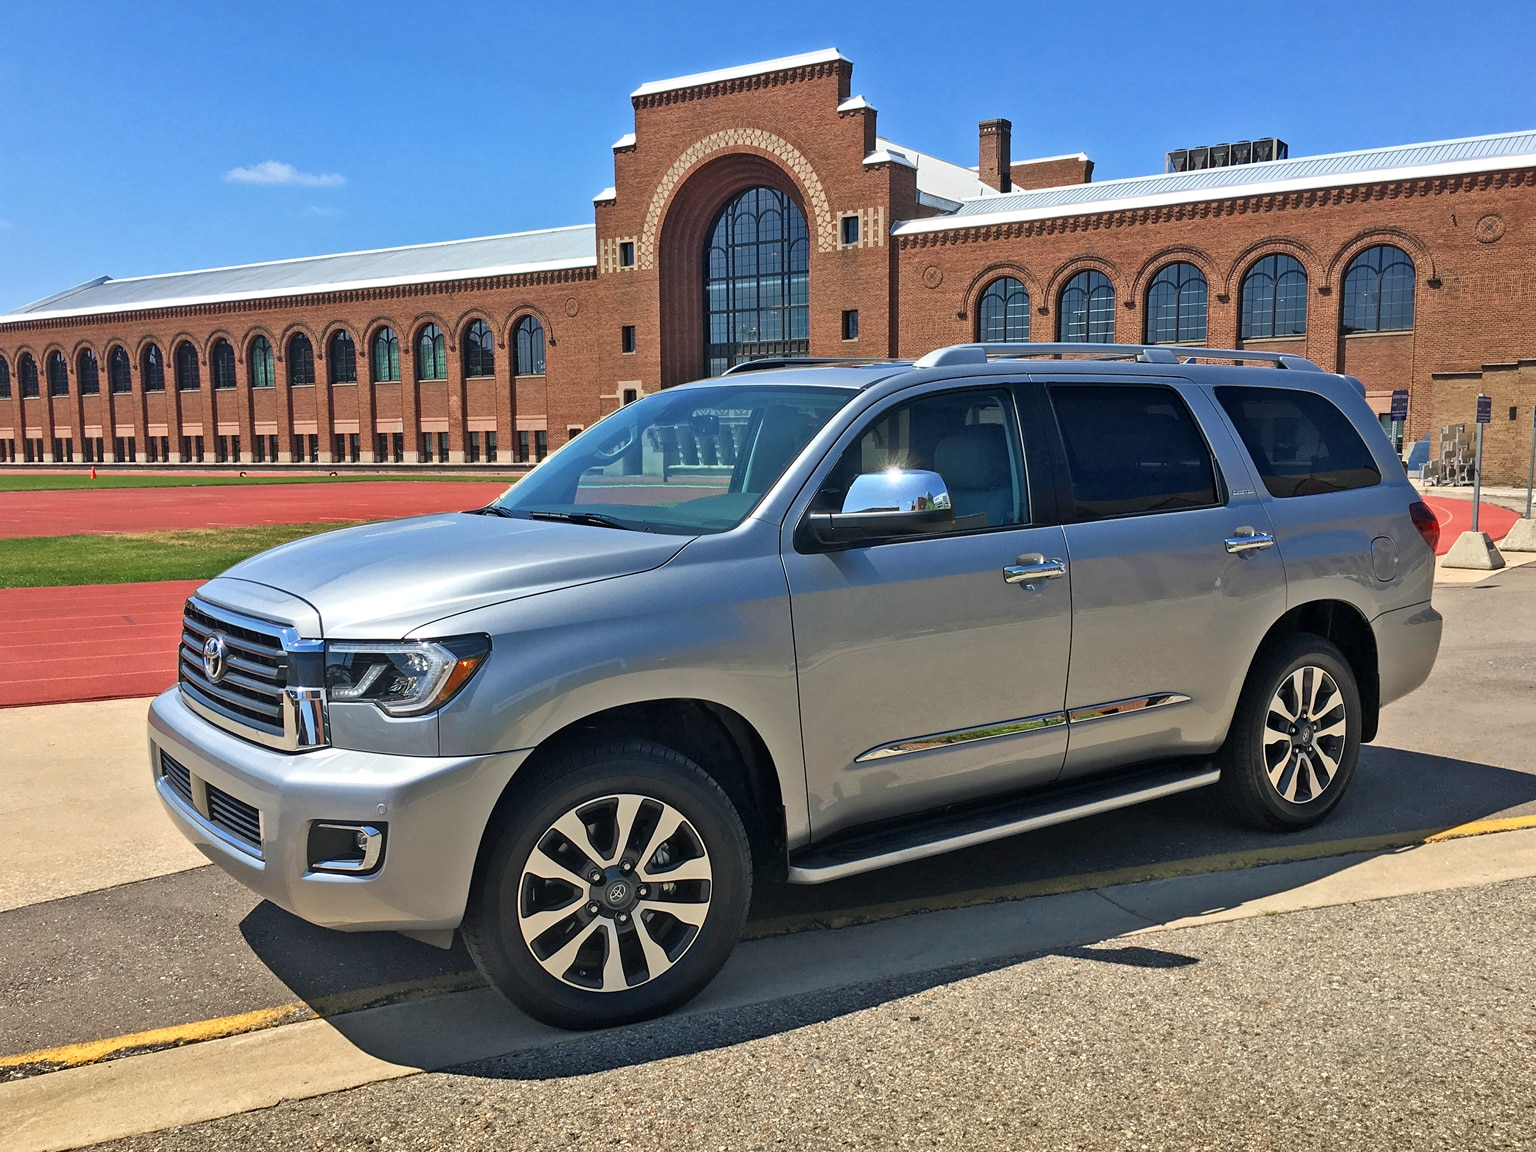 2019 Toyota Sequoia Limited Review Call It Experienced